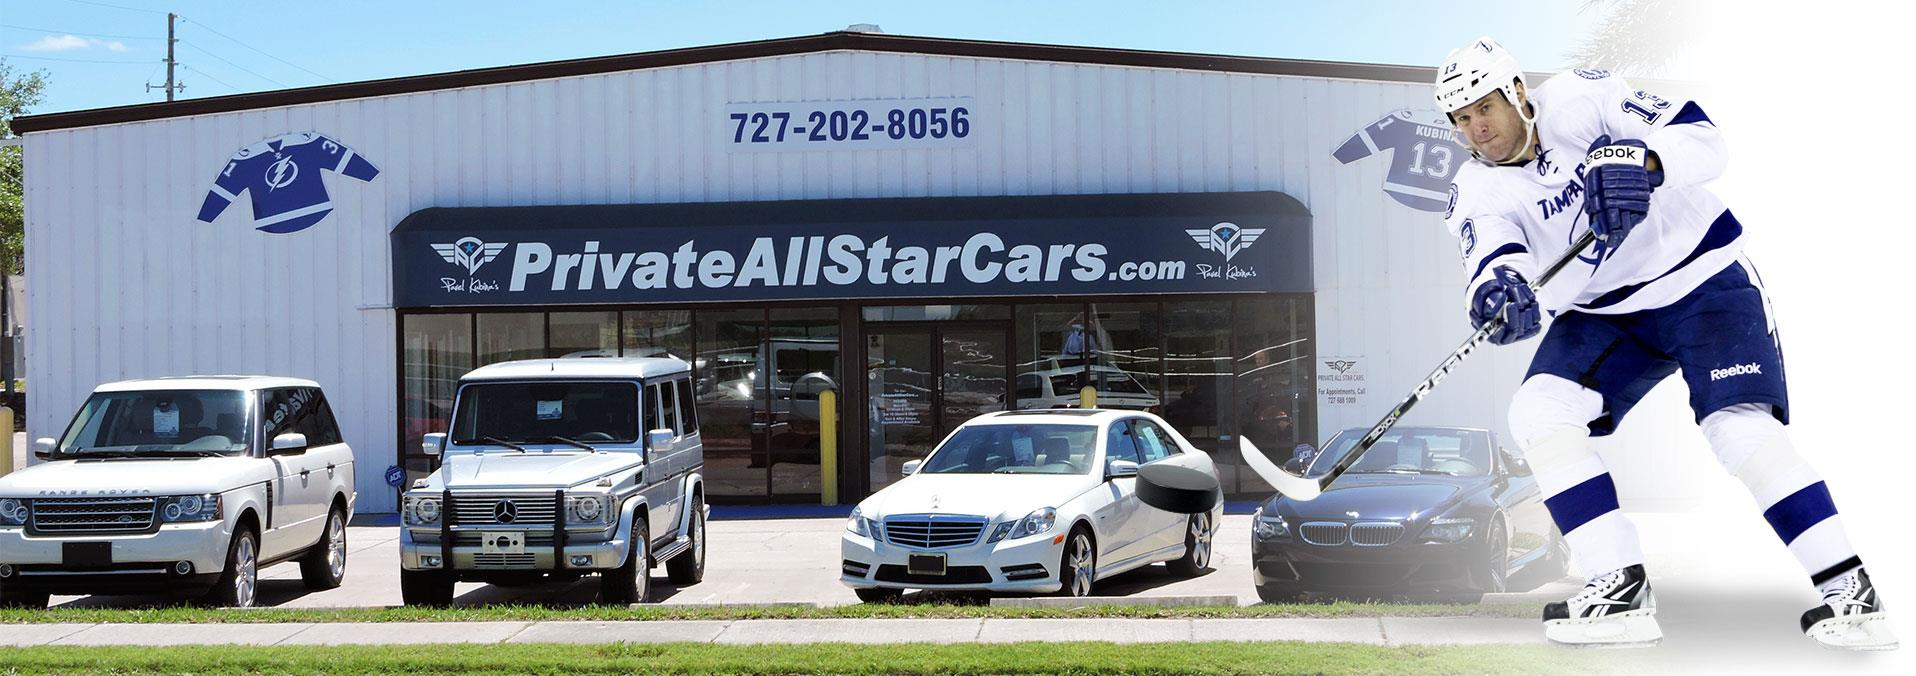 used cars st petersburg tampa fl used cars trucks fl private allstar cars. Black Bedroom Furniture Sets. Home Design Ideas